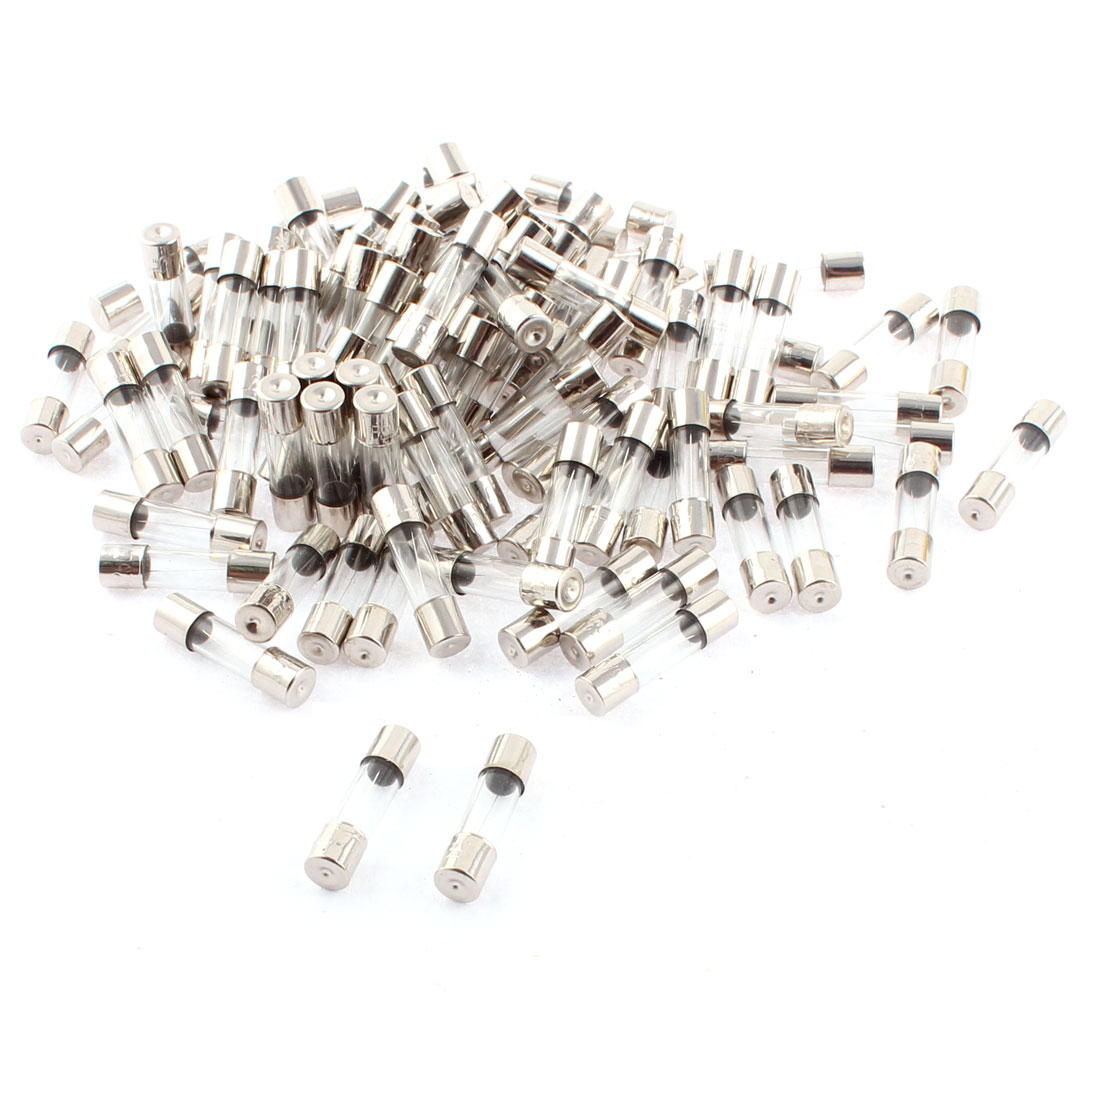 250V 3A 5mm x 20mm Quick Acting Fast Blow Type Glass Tube Fuse 100pcs